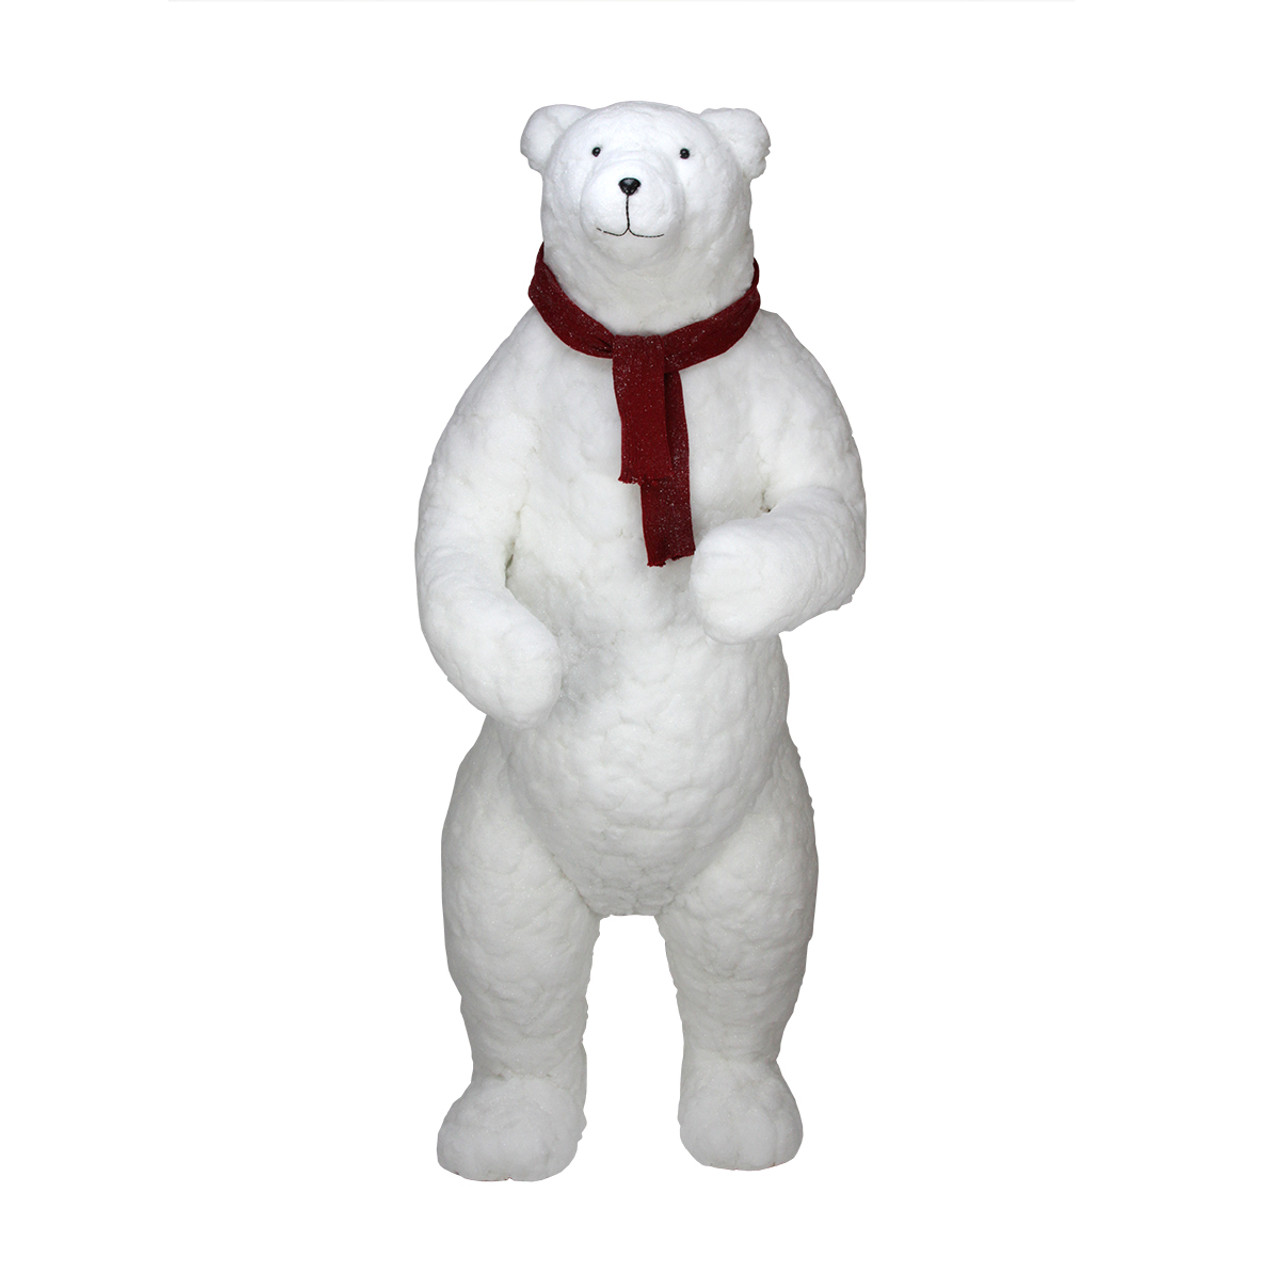 6 commercial standing plush white polar bear christmas decoration 31462437 - Polar Bear Christmas Decorations